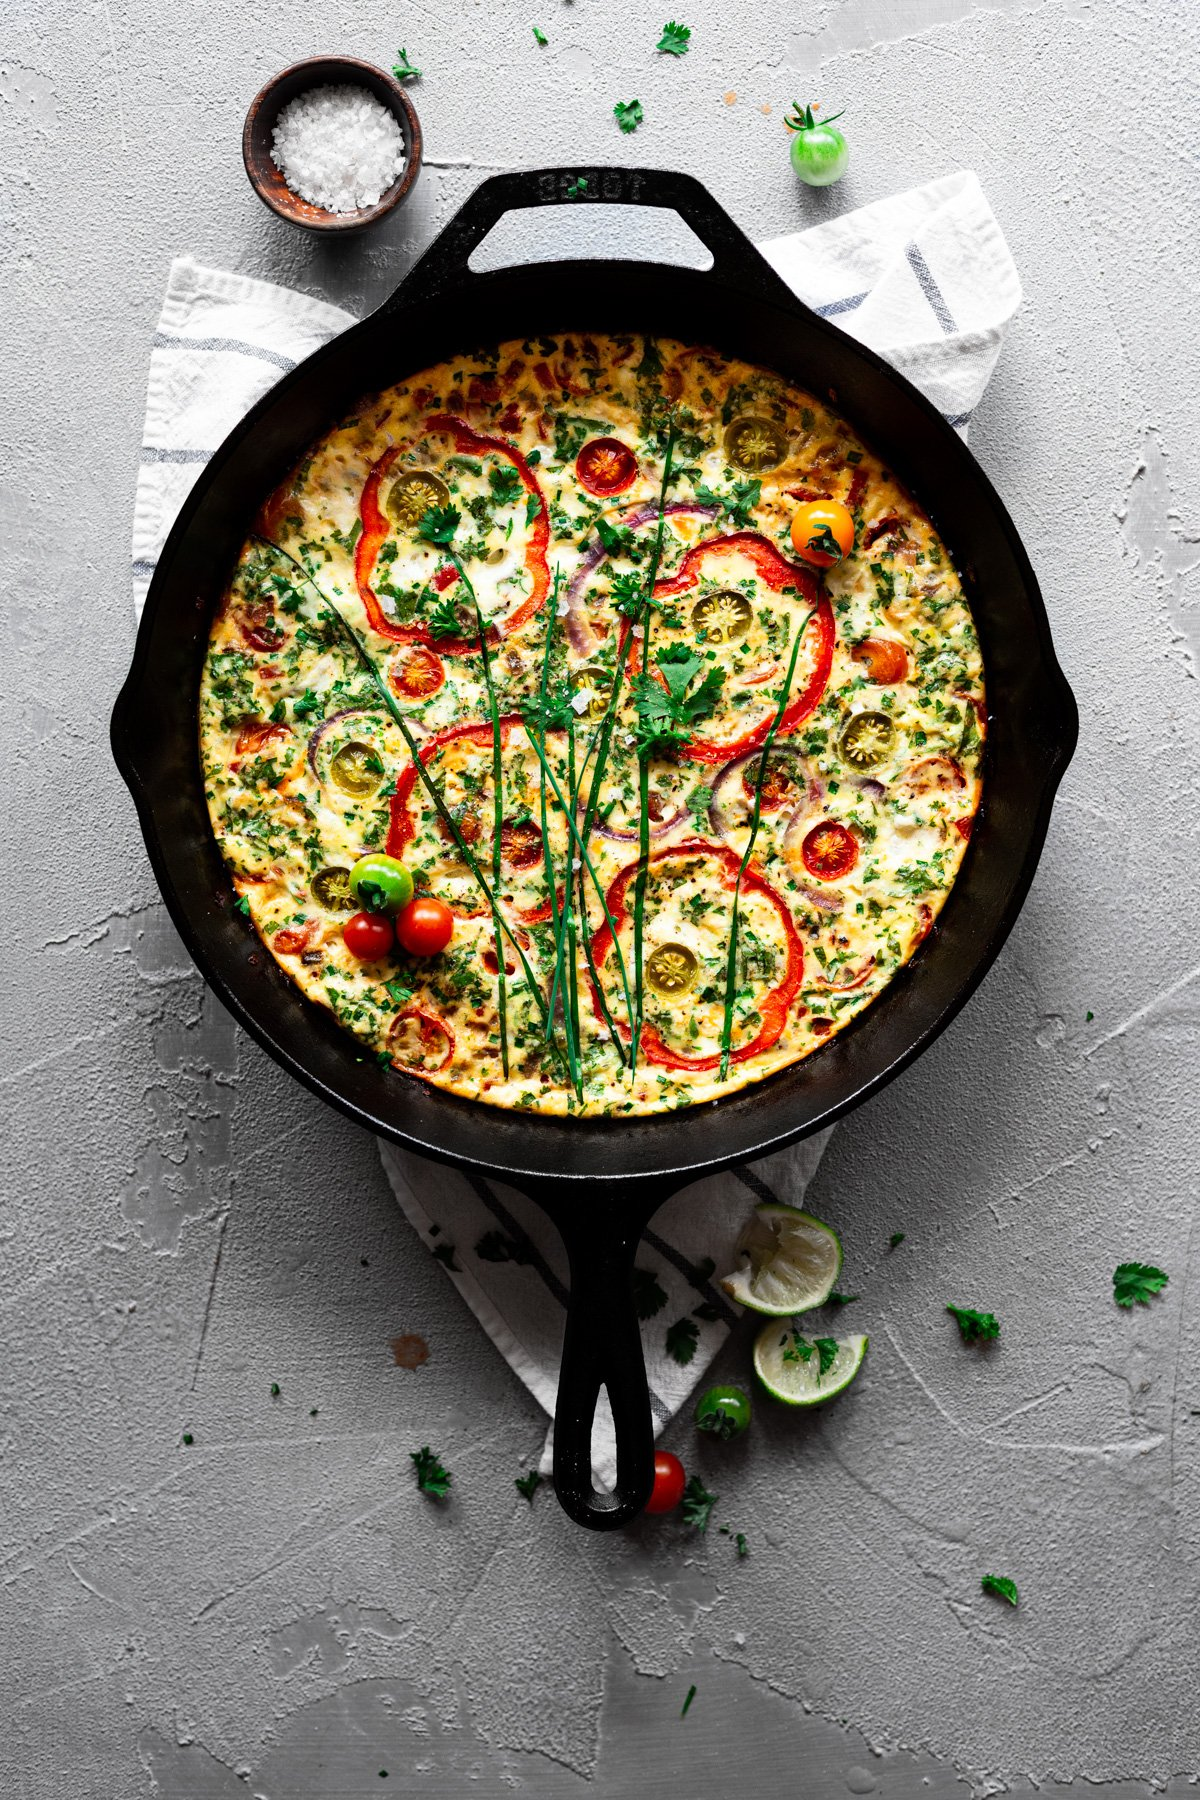 cast iron skilled with easy frittata recipe with veggies, herbs, and cheese